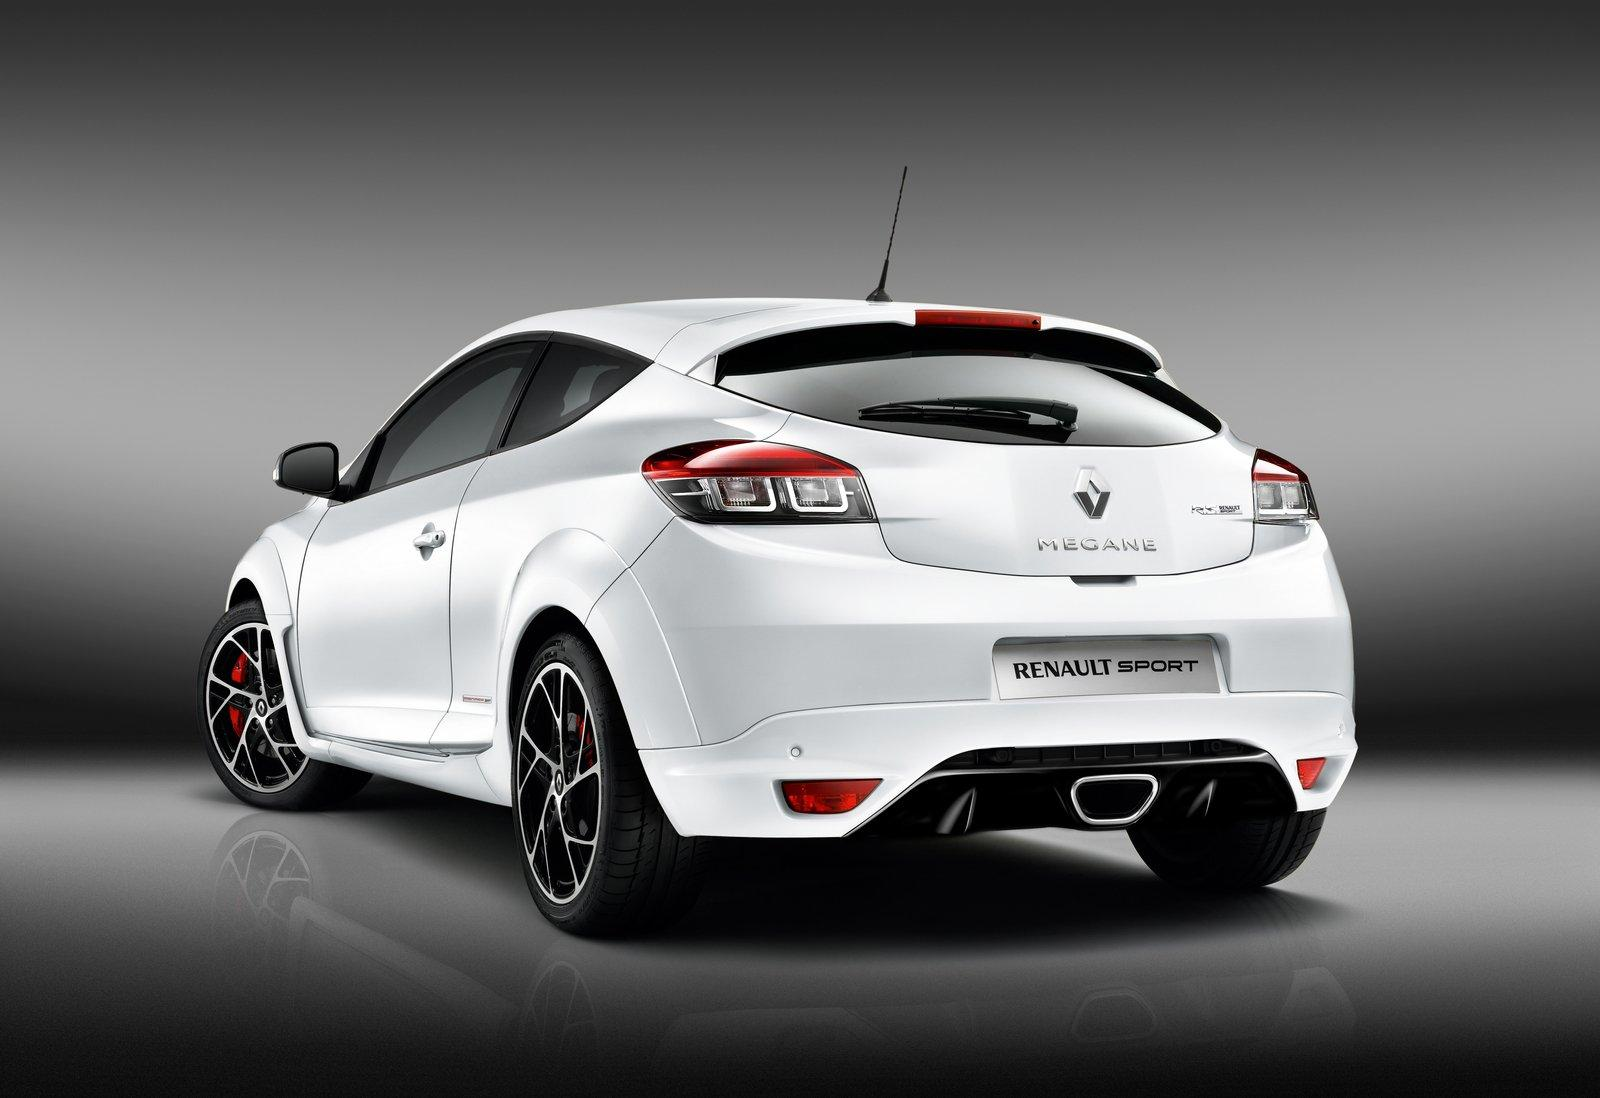 renault megane rs 250 monaco grand prix limited edition. Black Bedroom Furniture Sets. Home Design Ideas